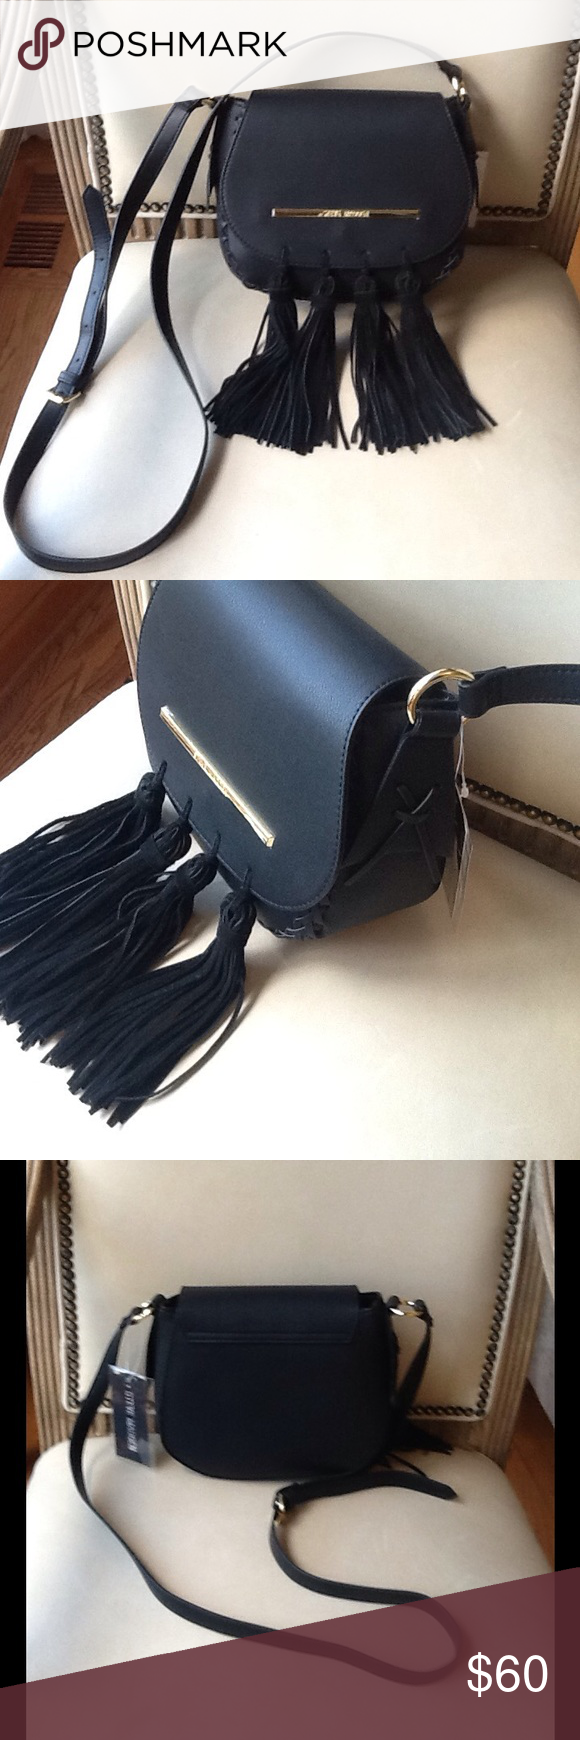 STEVE MADDEN TASSEL FRINGE CROSSBODY Brand new with tags attached. Black with suede tassels.  Crossbody style with gold hardware and 3 pockets on the inside. Ones zipper pocket and 2.small pockets. Sharp and looks even better in person. I bought this new for $68 Steve Madden Bags Crossbody Bags